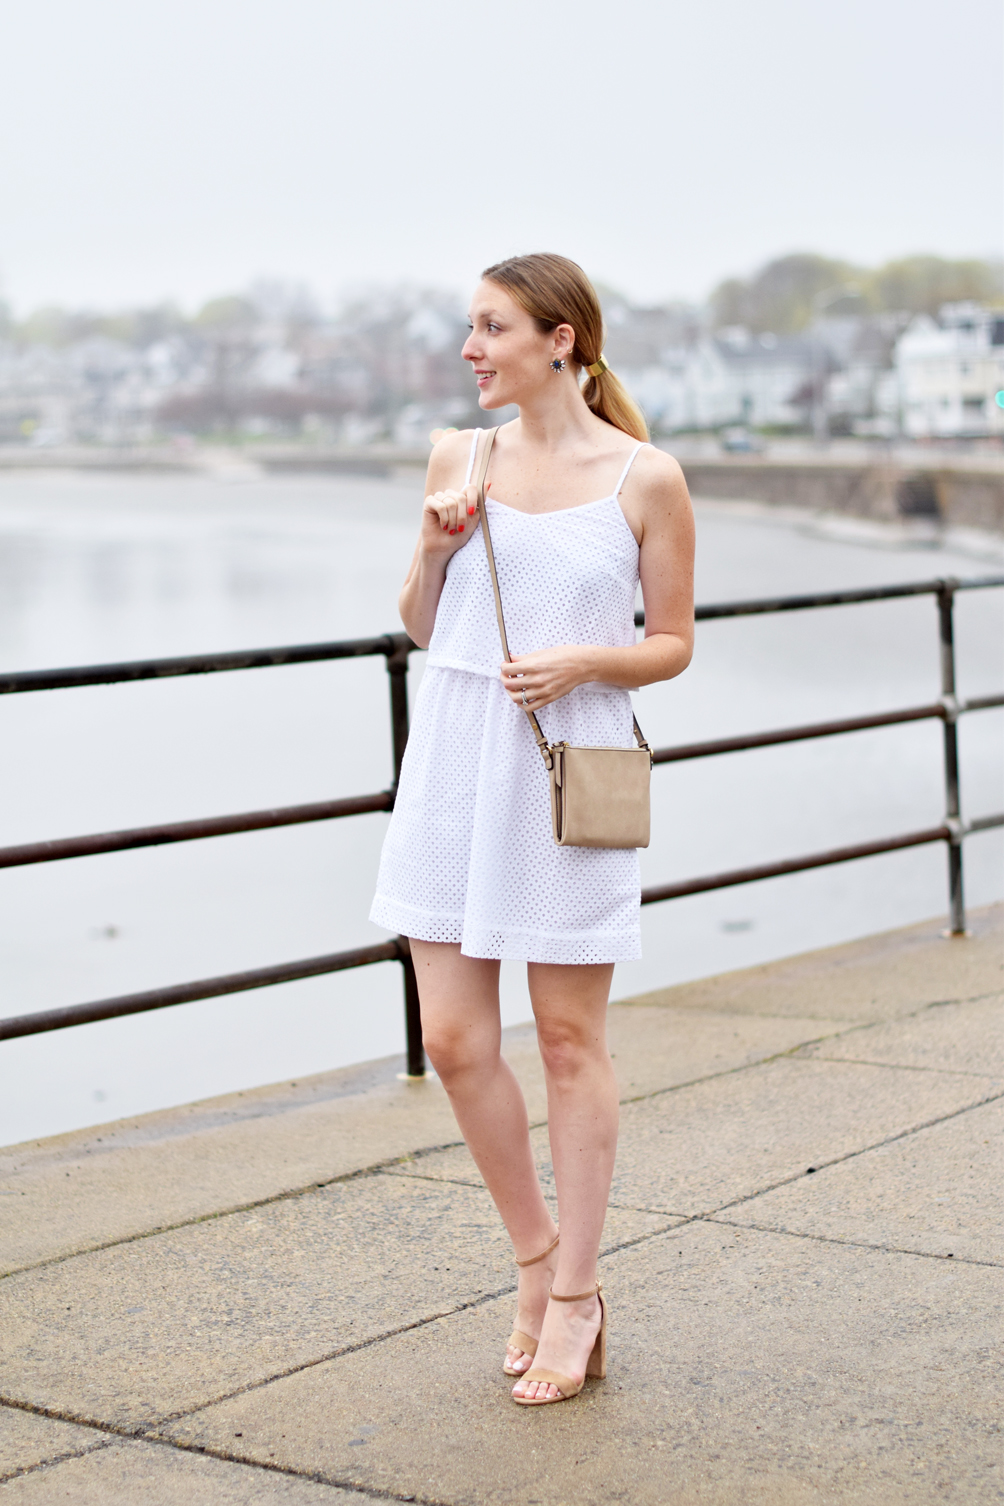 eyelet mesh tiered dress with tan sandals and crossbody bag, spring style - one brass fox